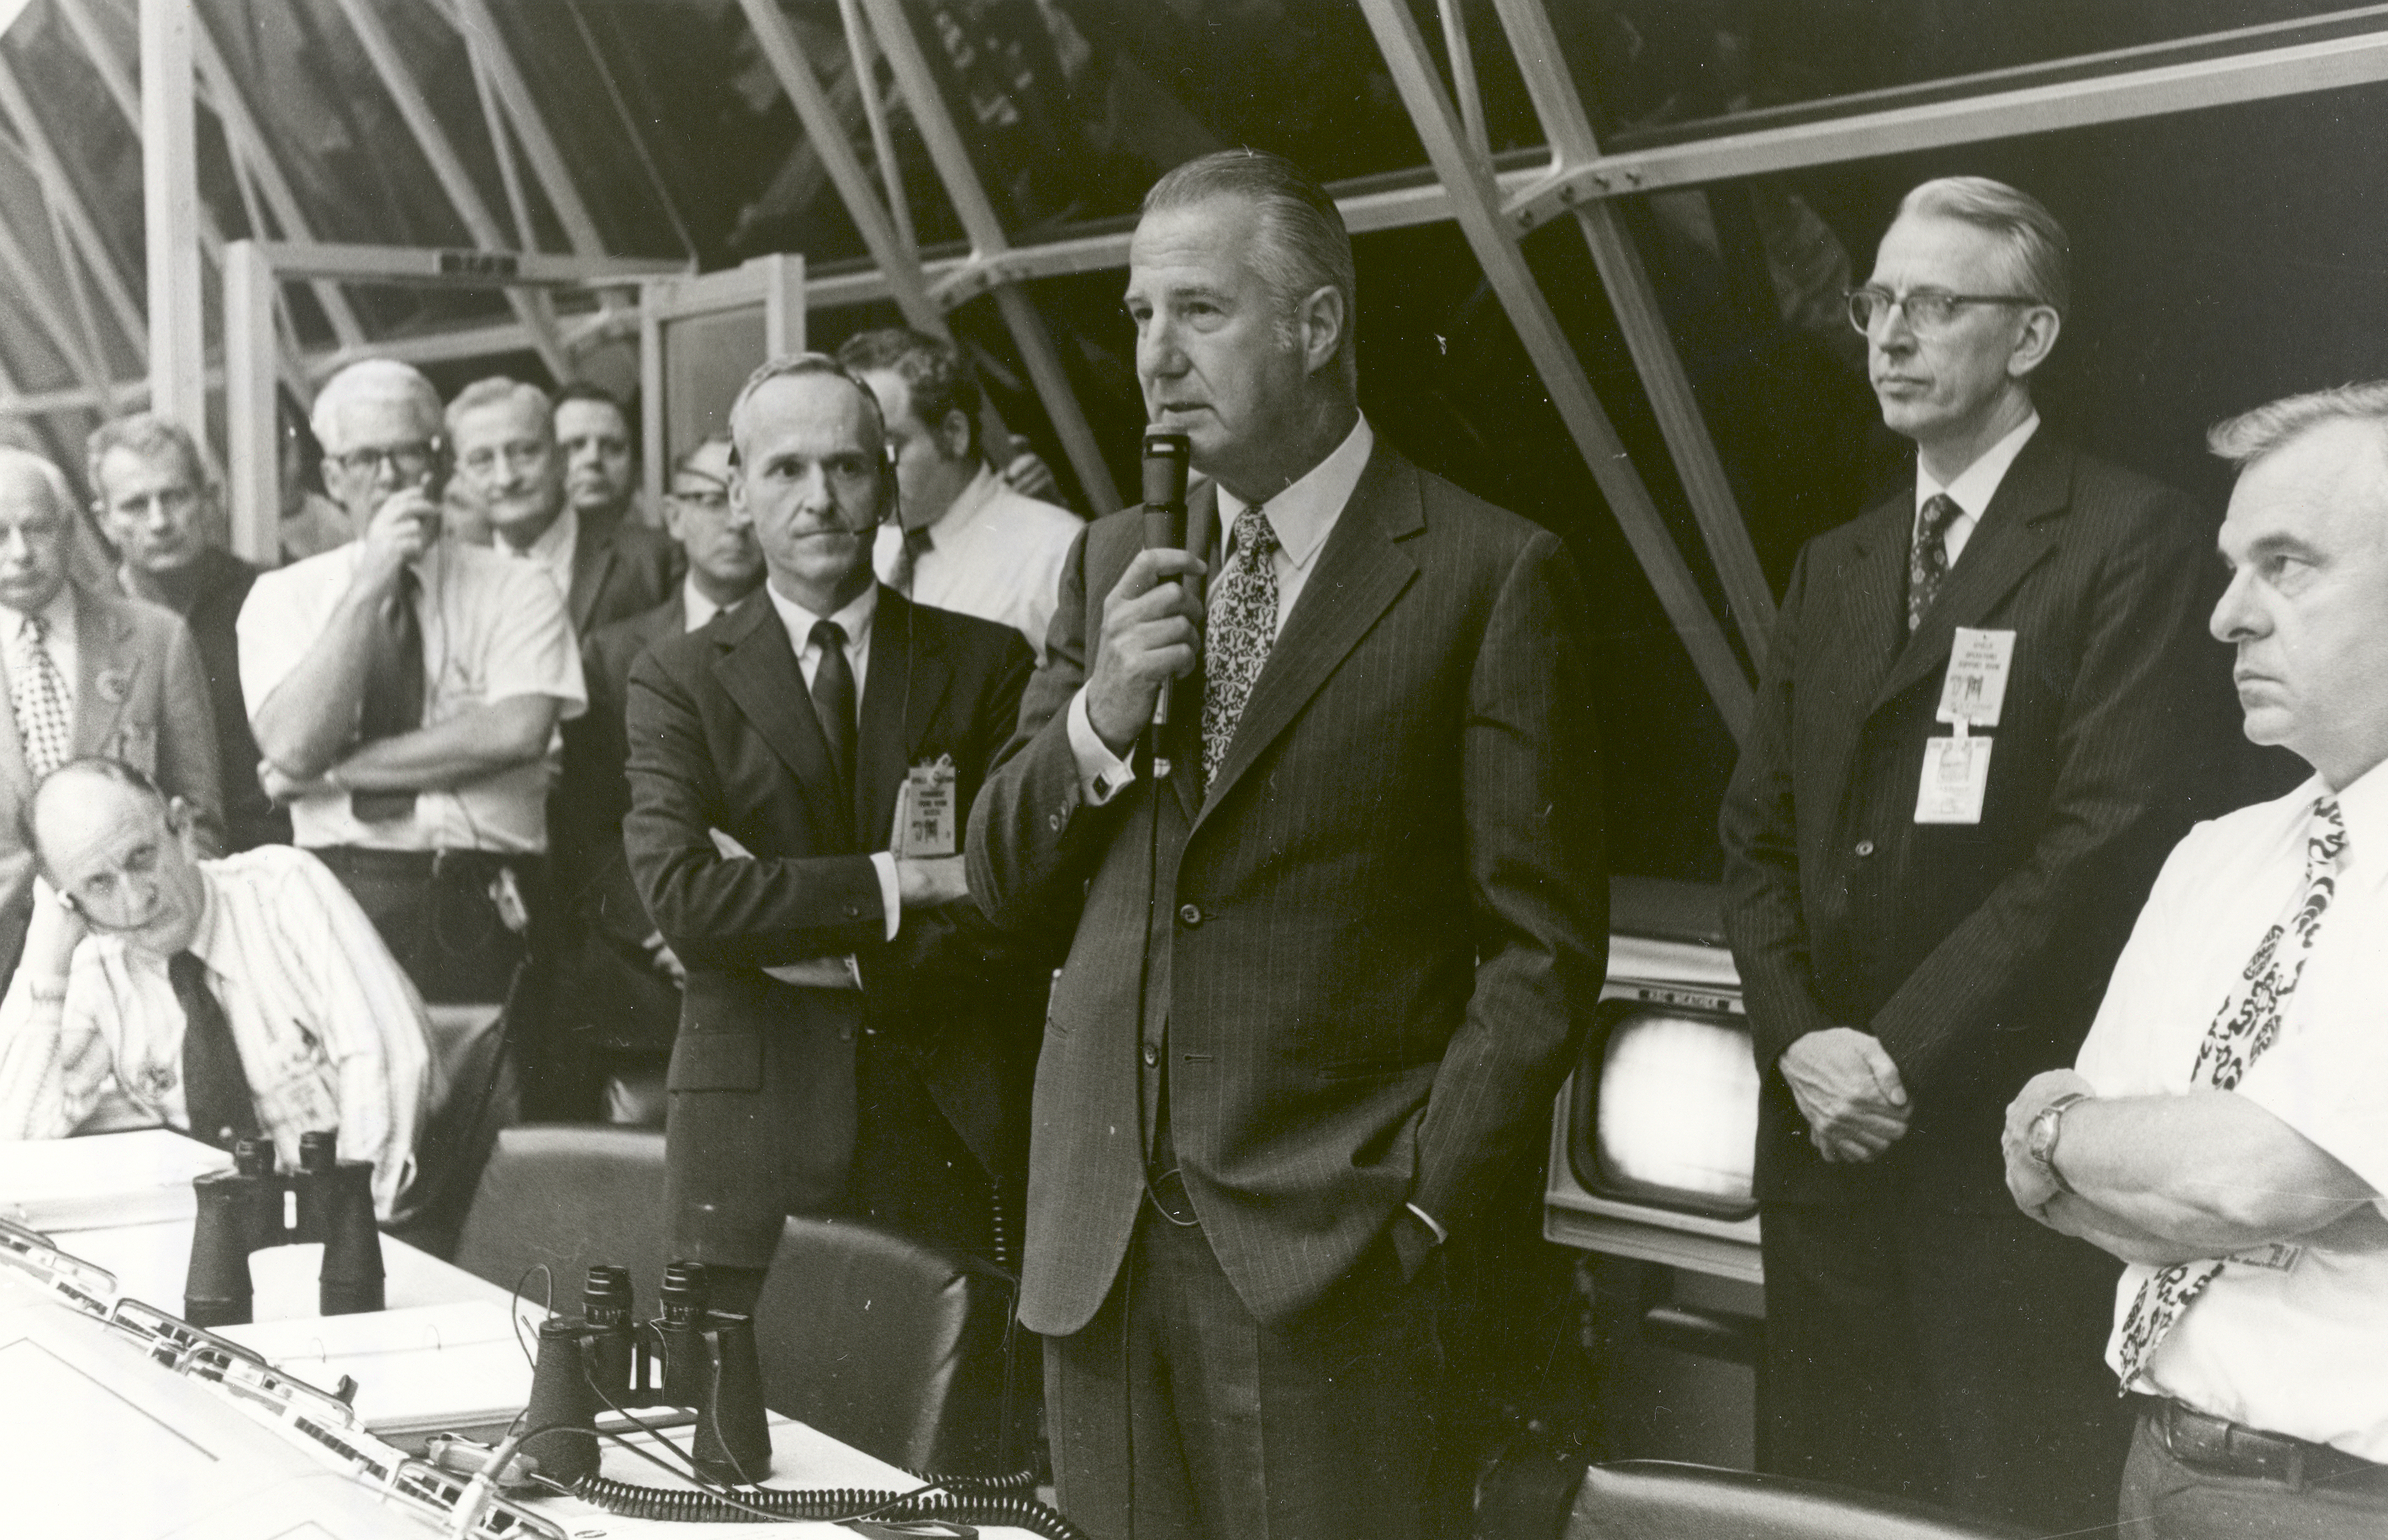 Vice President Spiro T. Agnew congratulates launch team personnel, in firing room #1 of launch control minutes after the successful launch of Apollo 17